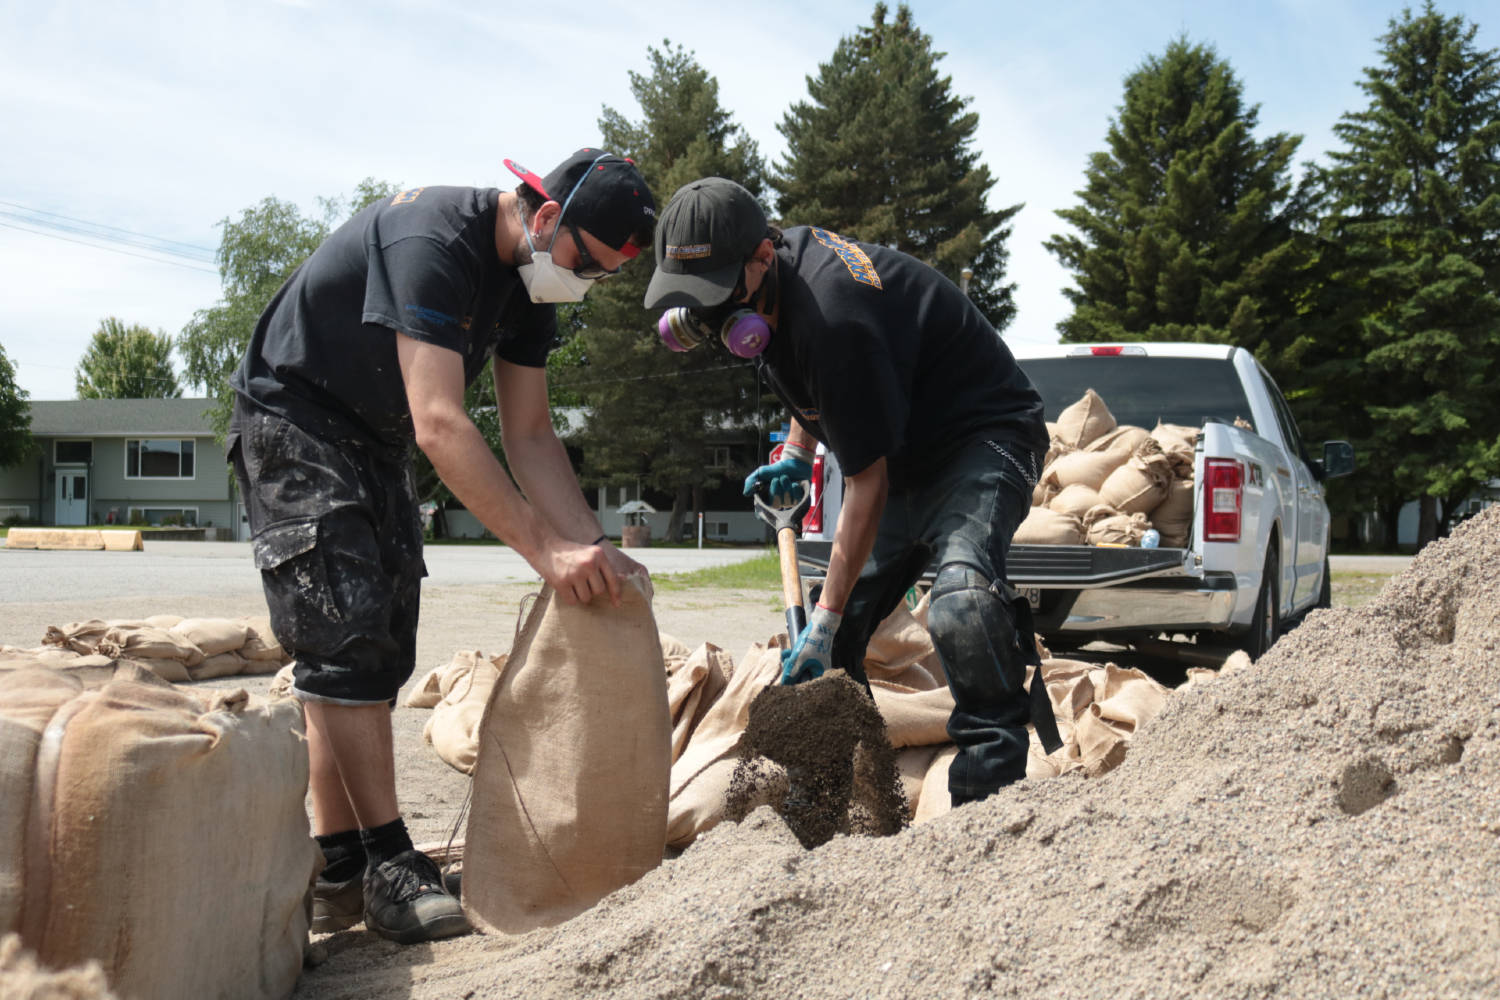 Jesse McCullough and Cass Hall fill sandbags at the Grand Forks arena on May 28, 2020.                                (Jensen Edwards/Grand Forks Gazette)